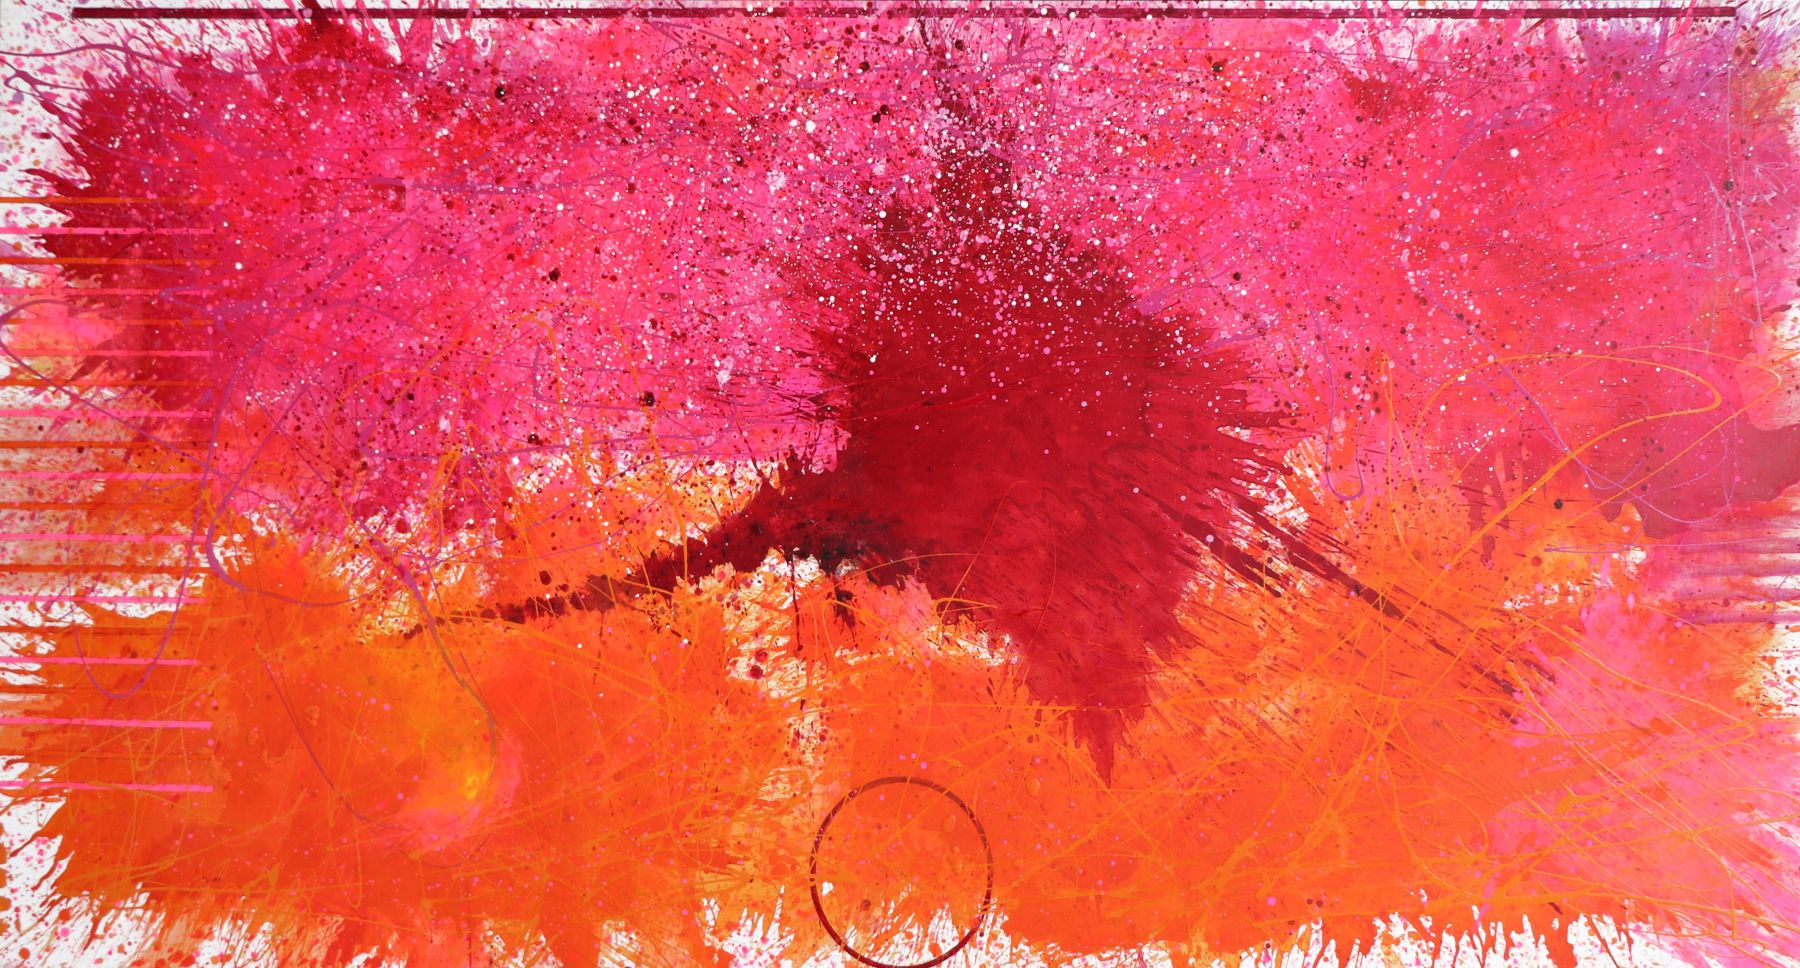 J. Steven Manolis, Flamingo, 2019, Acrylic and Latex Enamel on canvas, 72 x 120 inches, Abstract expressionism paintings for sale at Manolis Projects Art Gallery, Miami, Fl